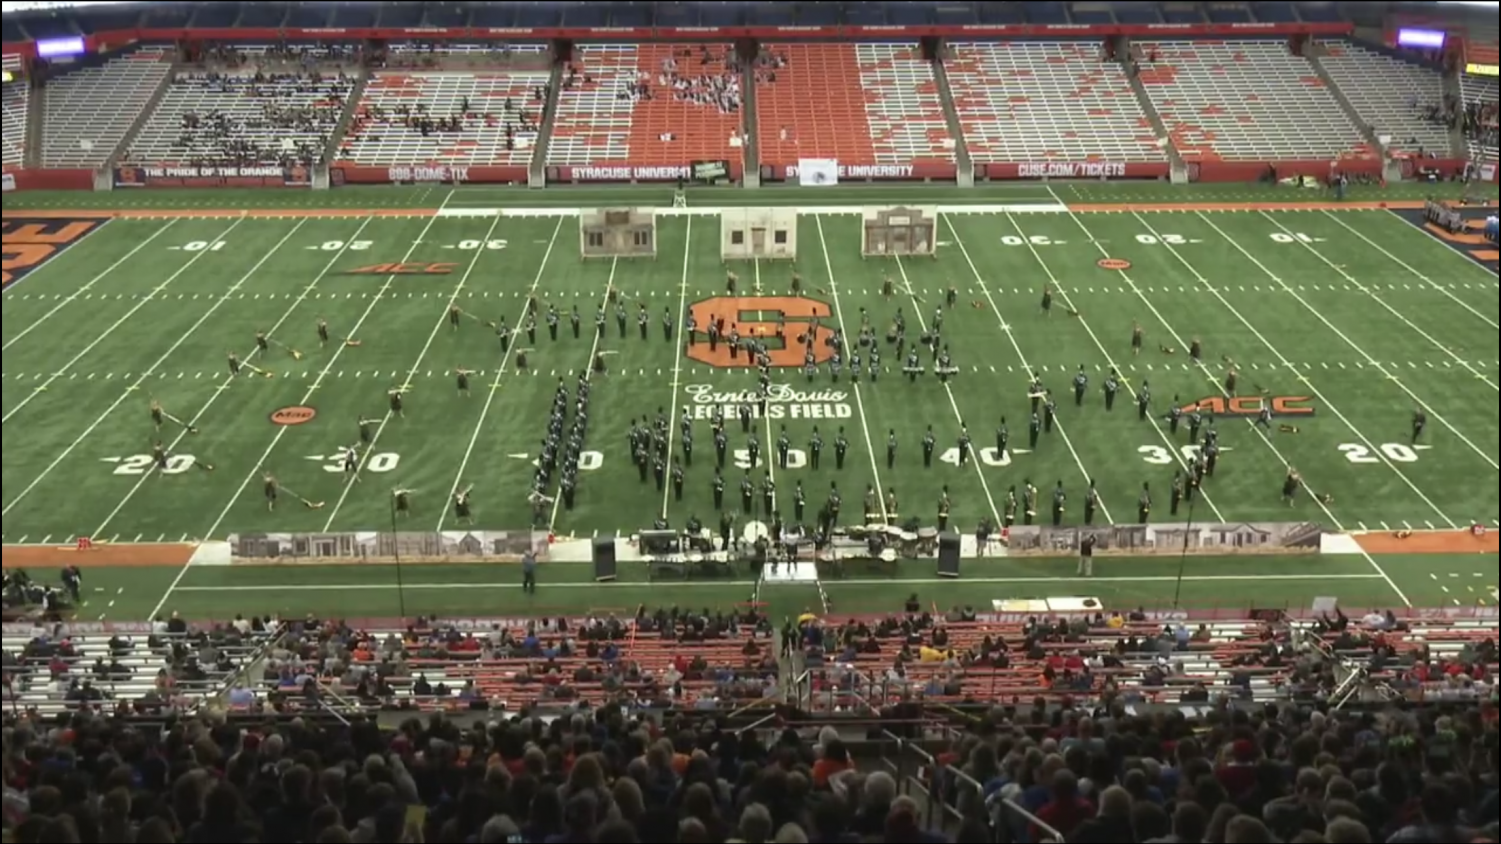 Green Machine performs at the Syracuse Carrier Dome!